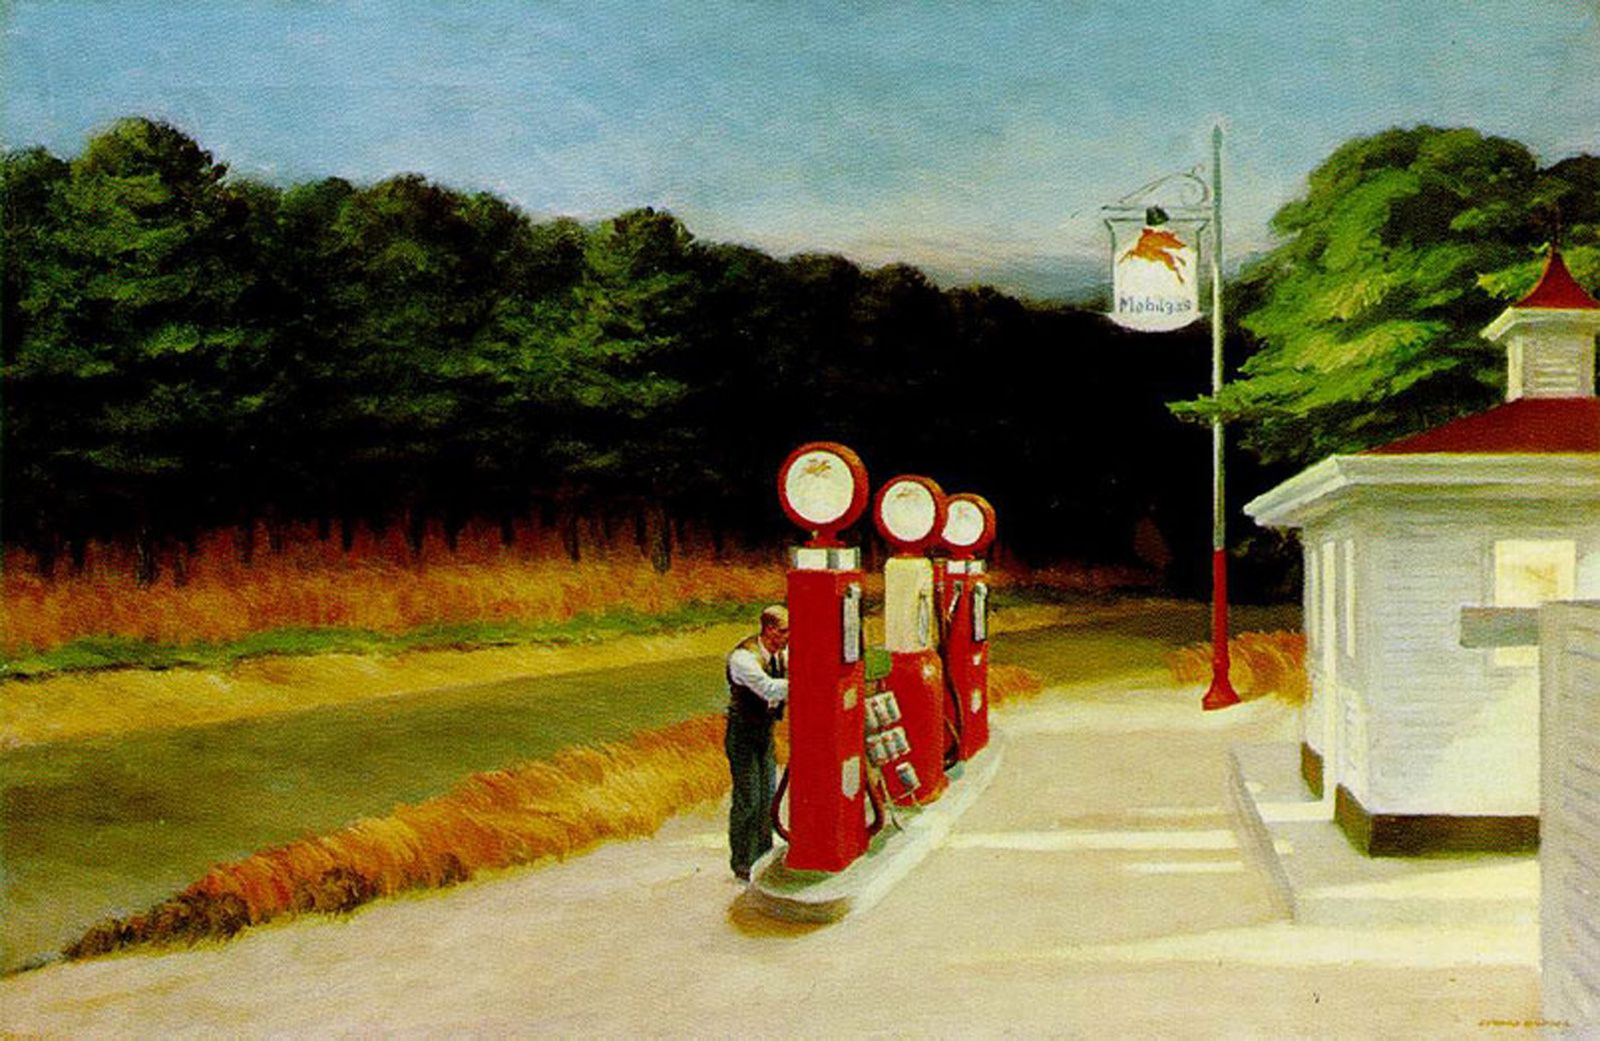 """Gas"", 1940 d'Edward HOPPER - Courtesy MOMA, New York"